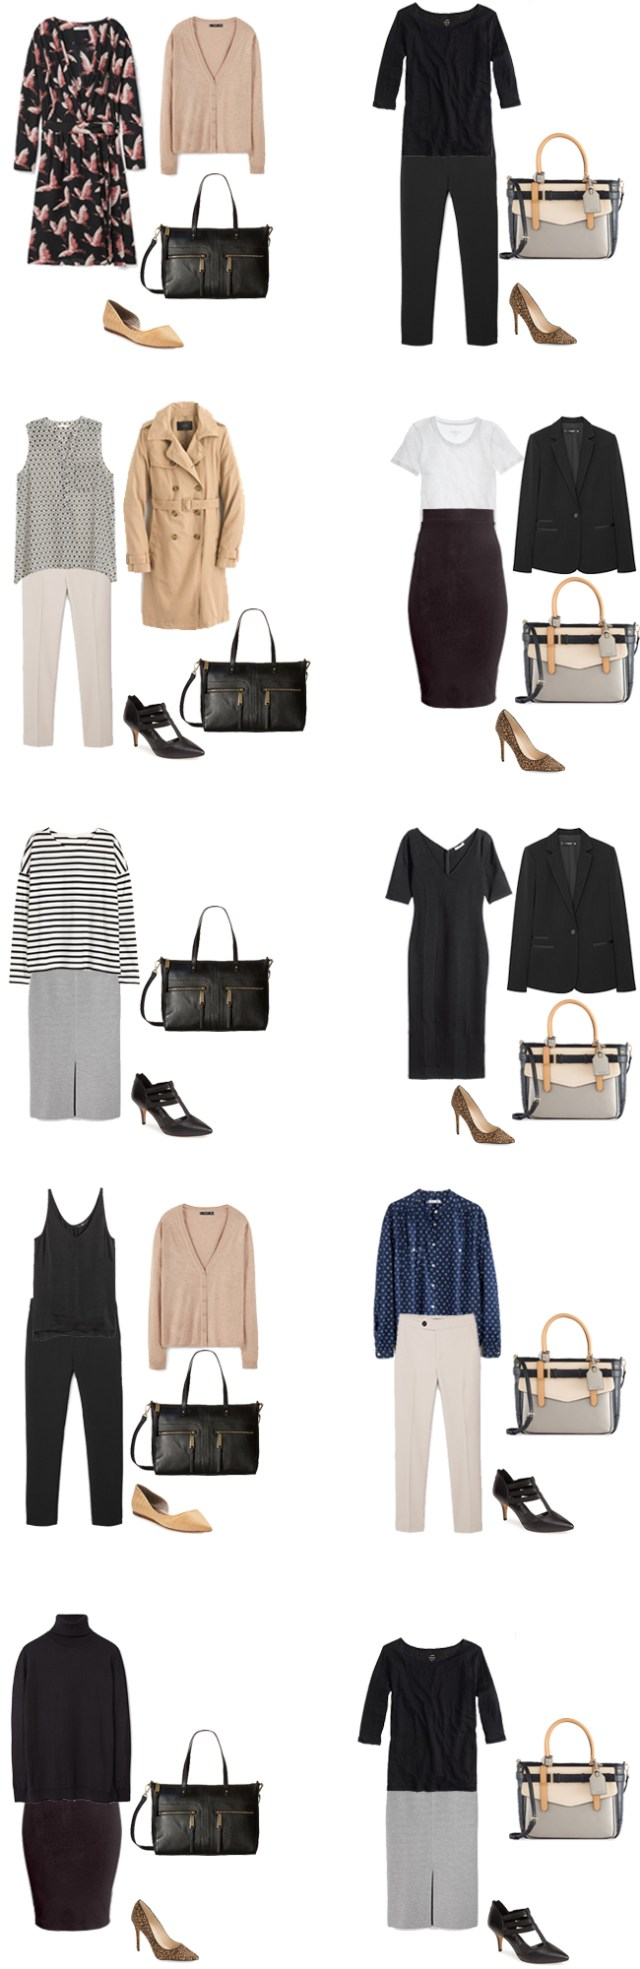 Basic Work Capsule Outfits 21-30 #capsulewardrobe #workwardrobe #workwear #capsule